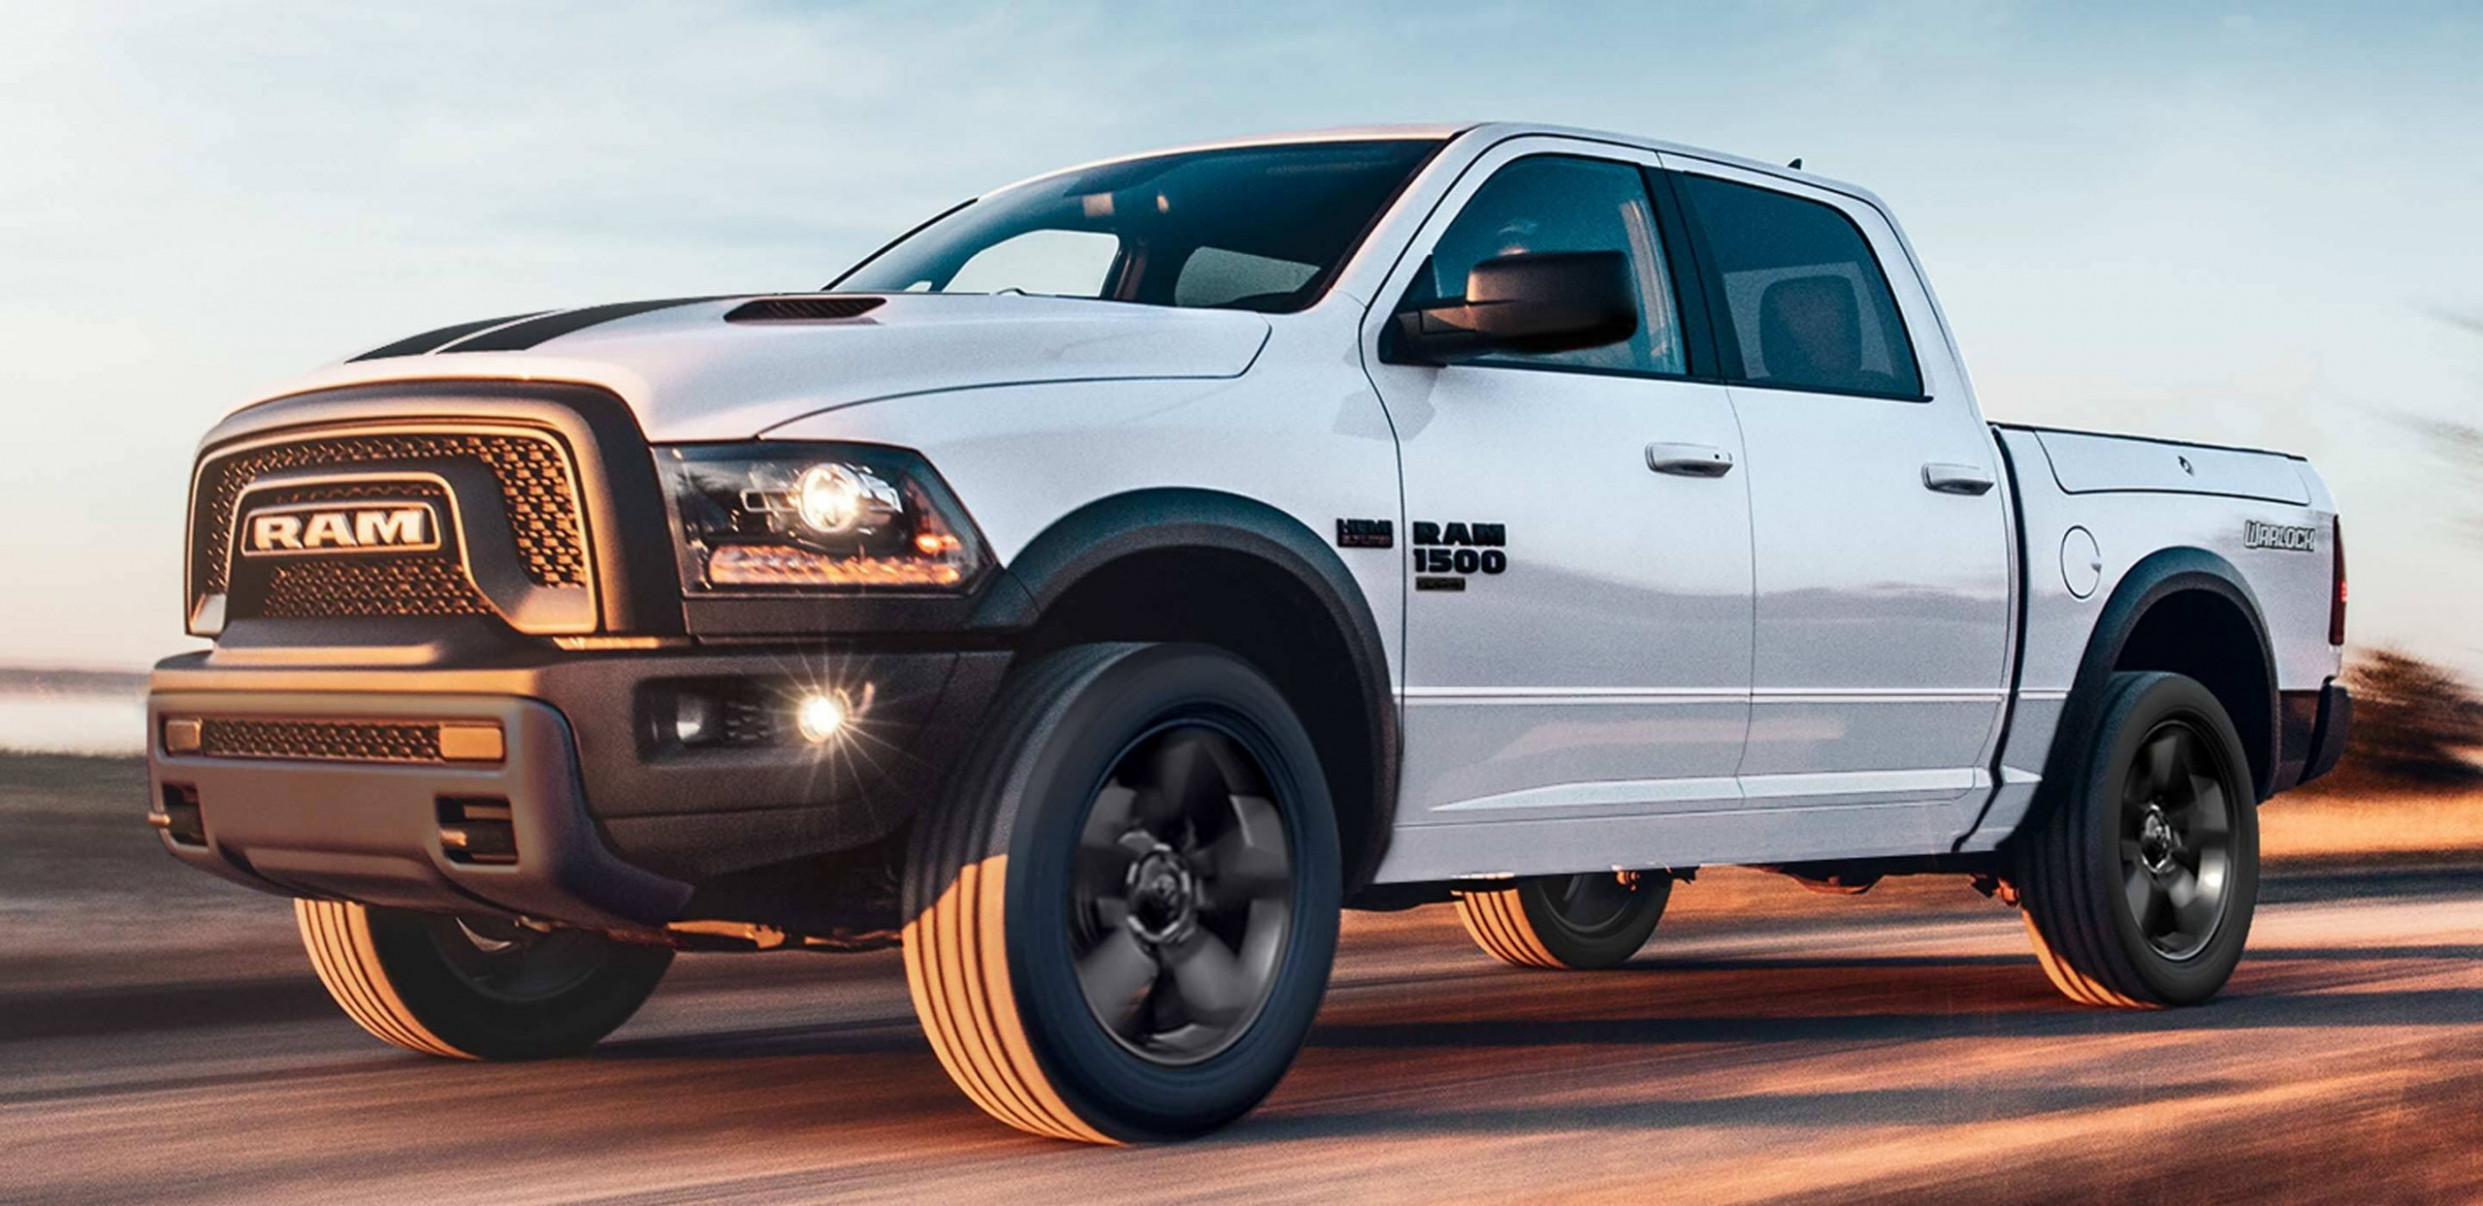 11 Ram 11 Classic Warlock Options & Pricing: - Mopar Insiders - 2020 dodge warlock decals